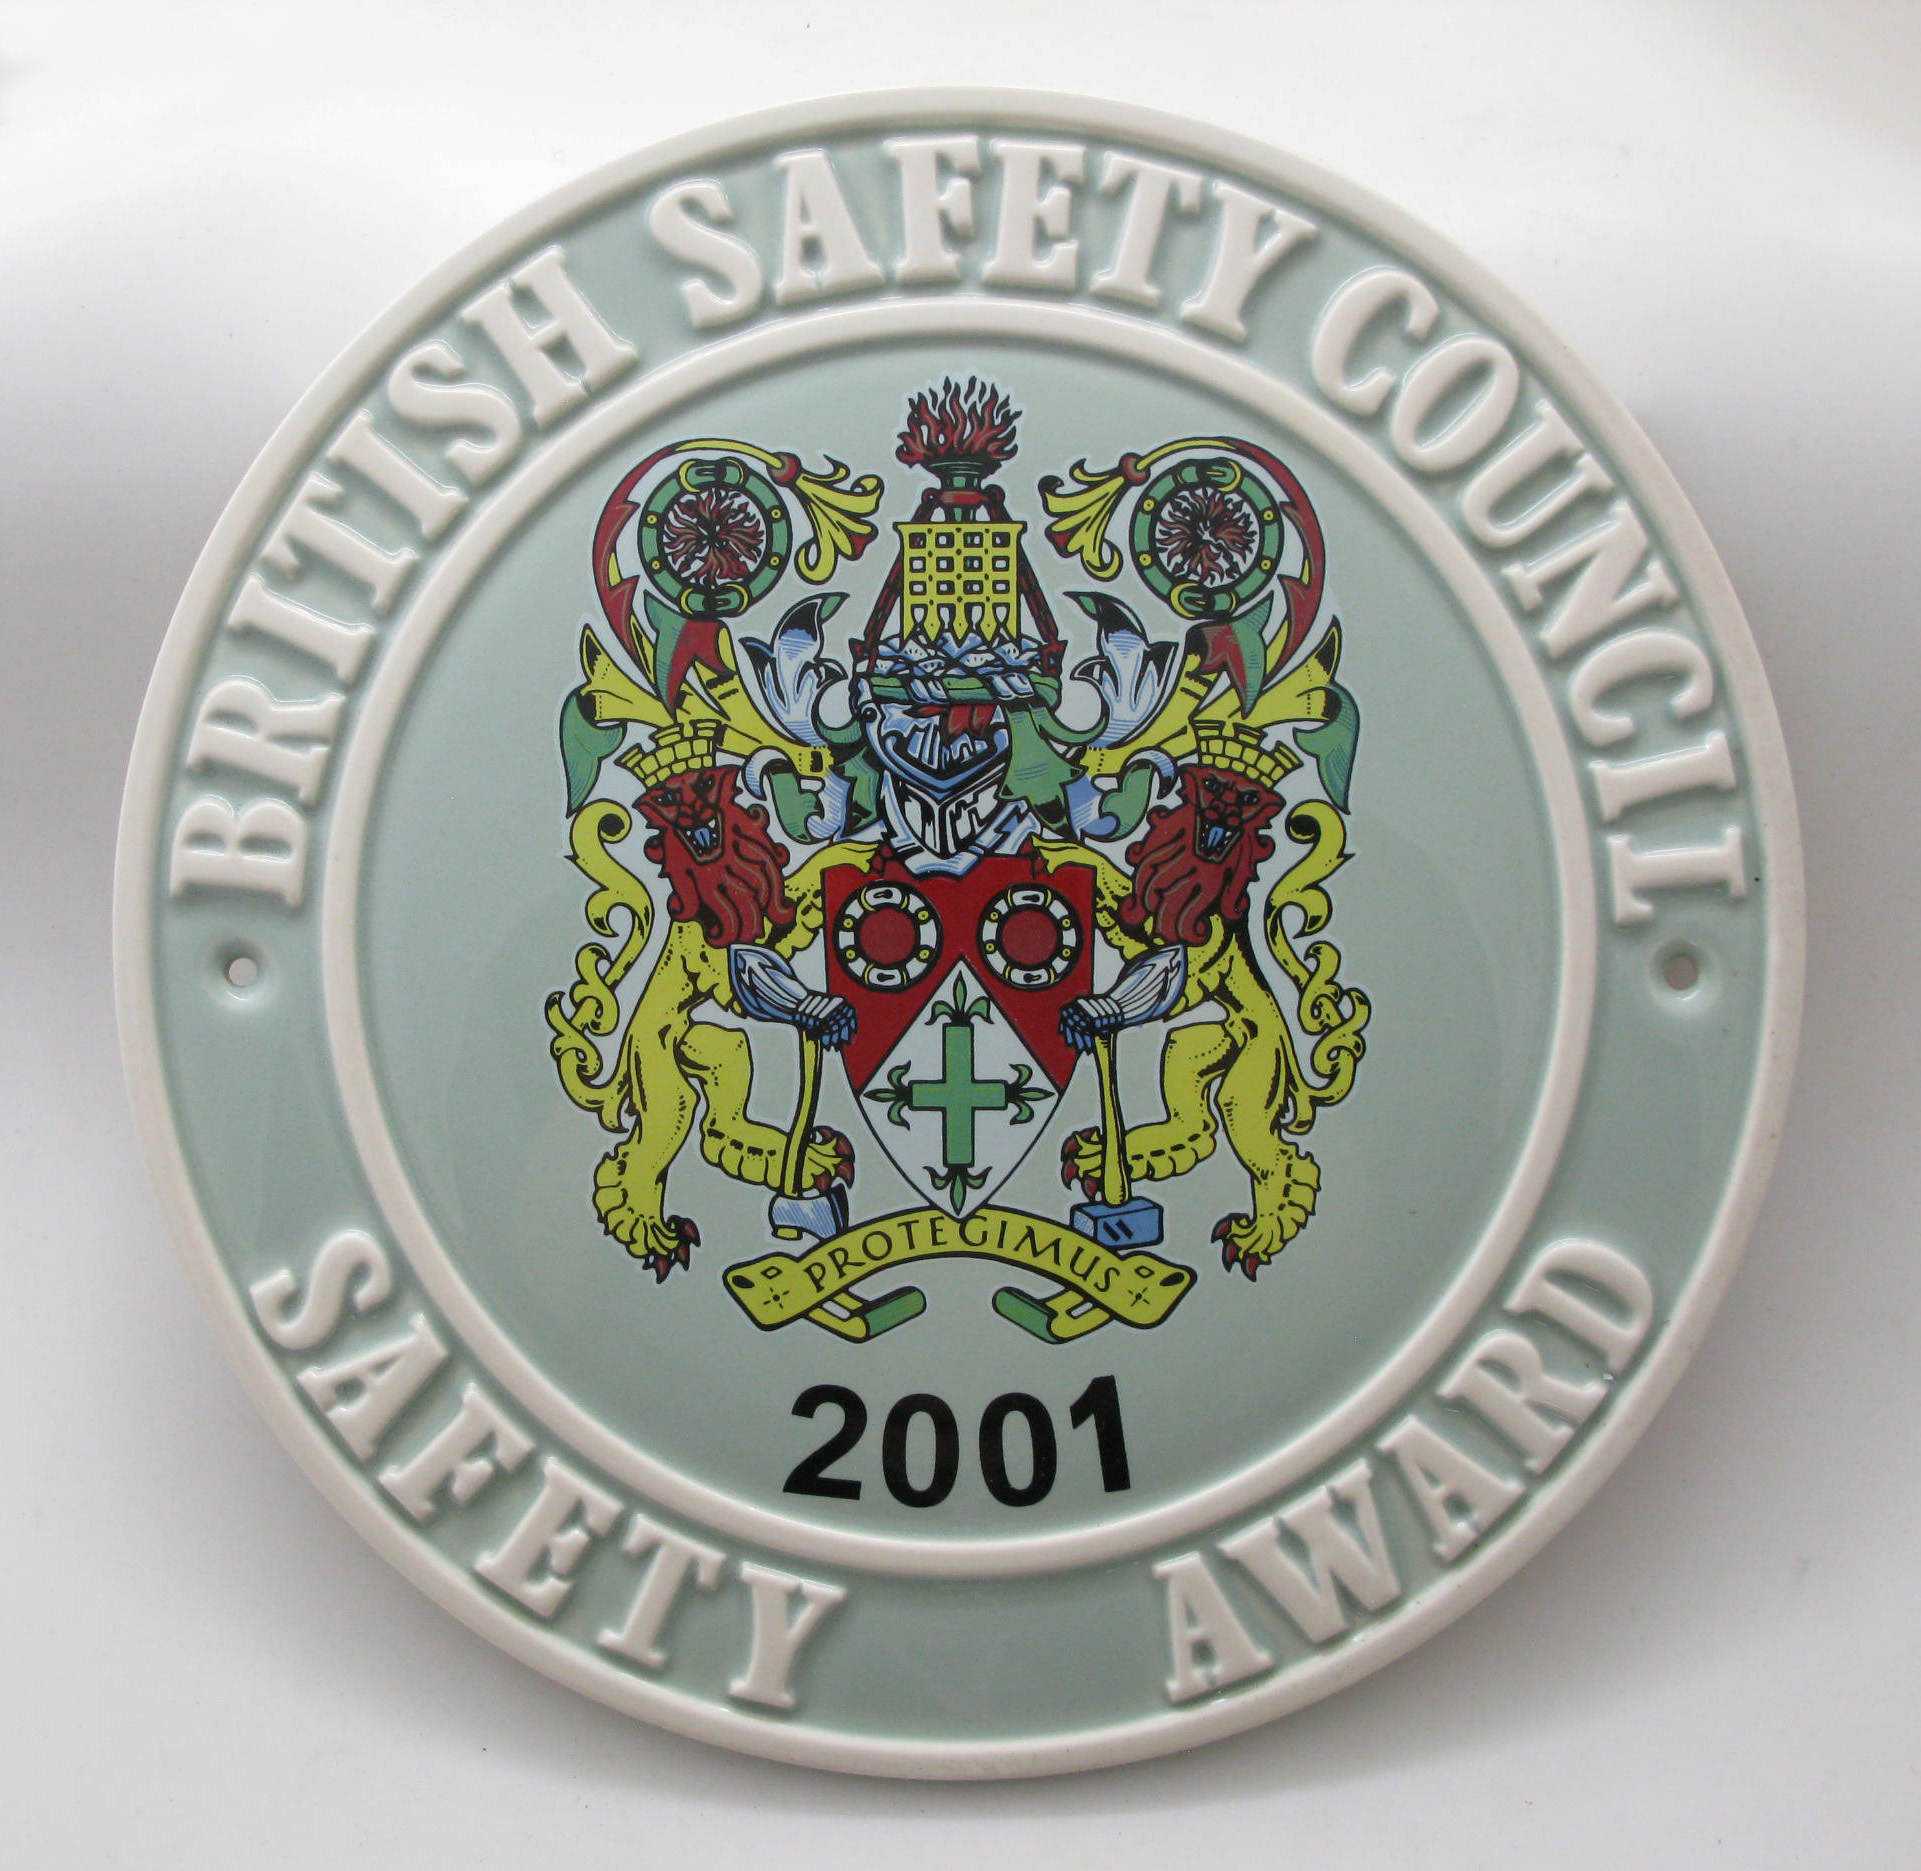 2001 Safety Award Plaque